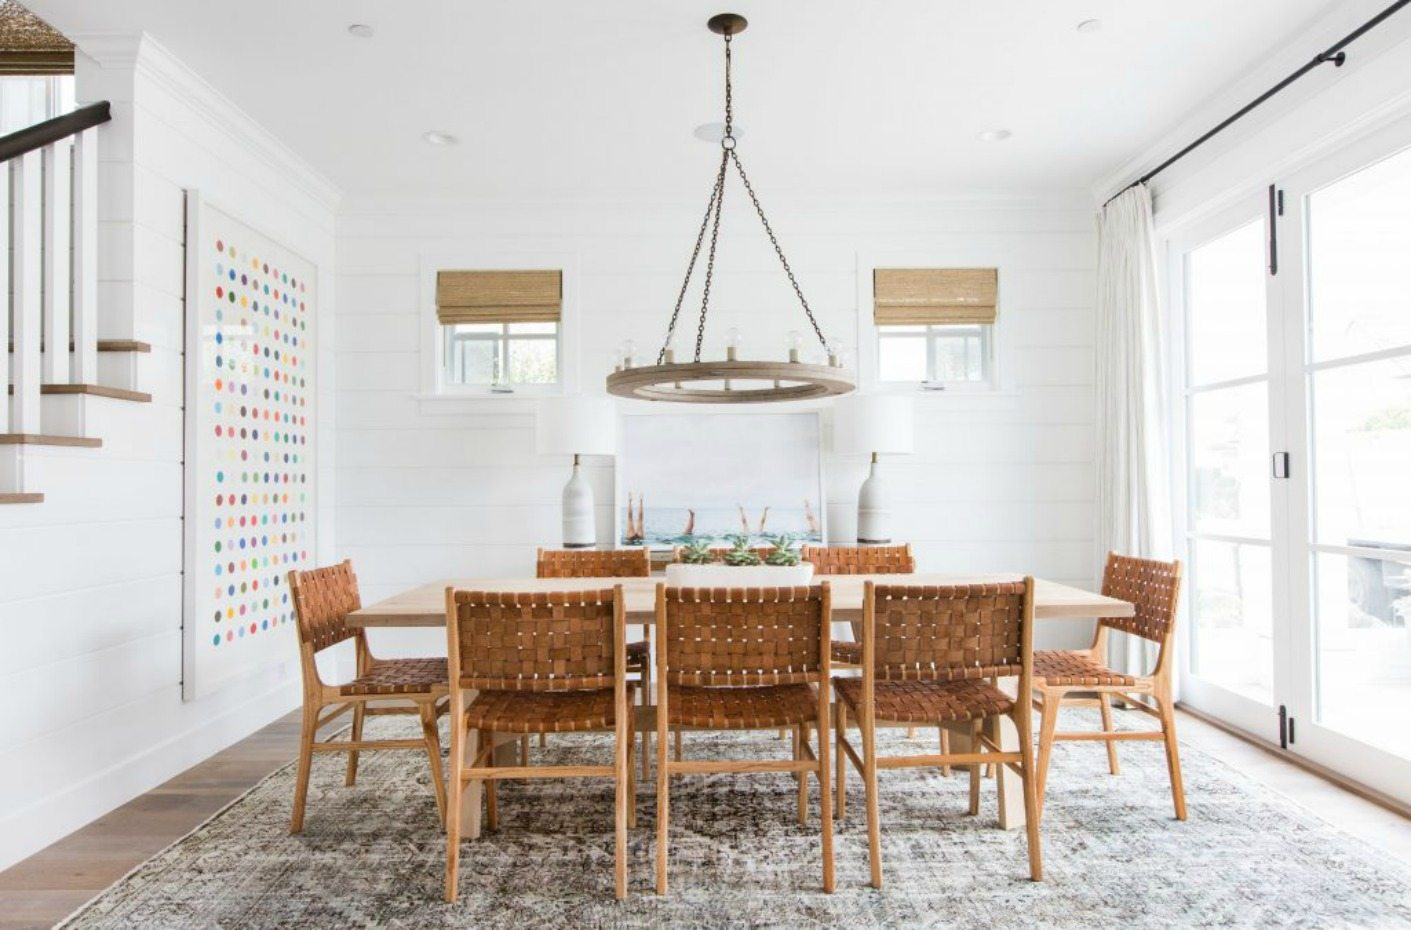 5 Interior Design Tips To Make Your Home Bright And Airy